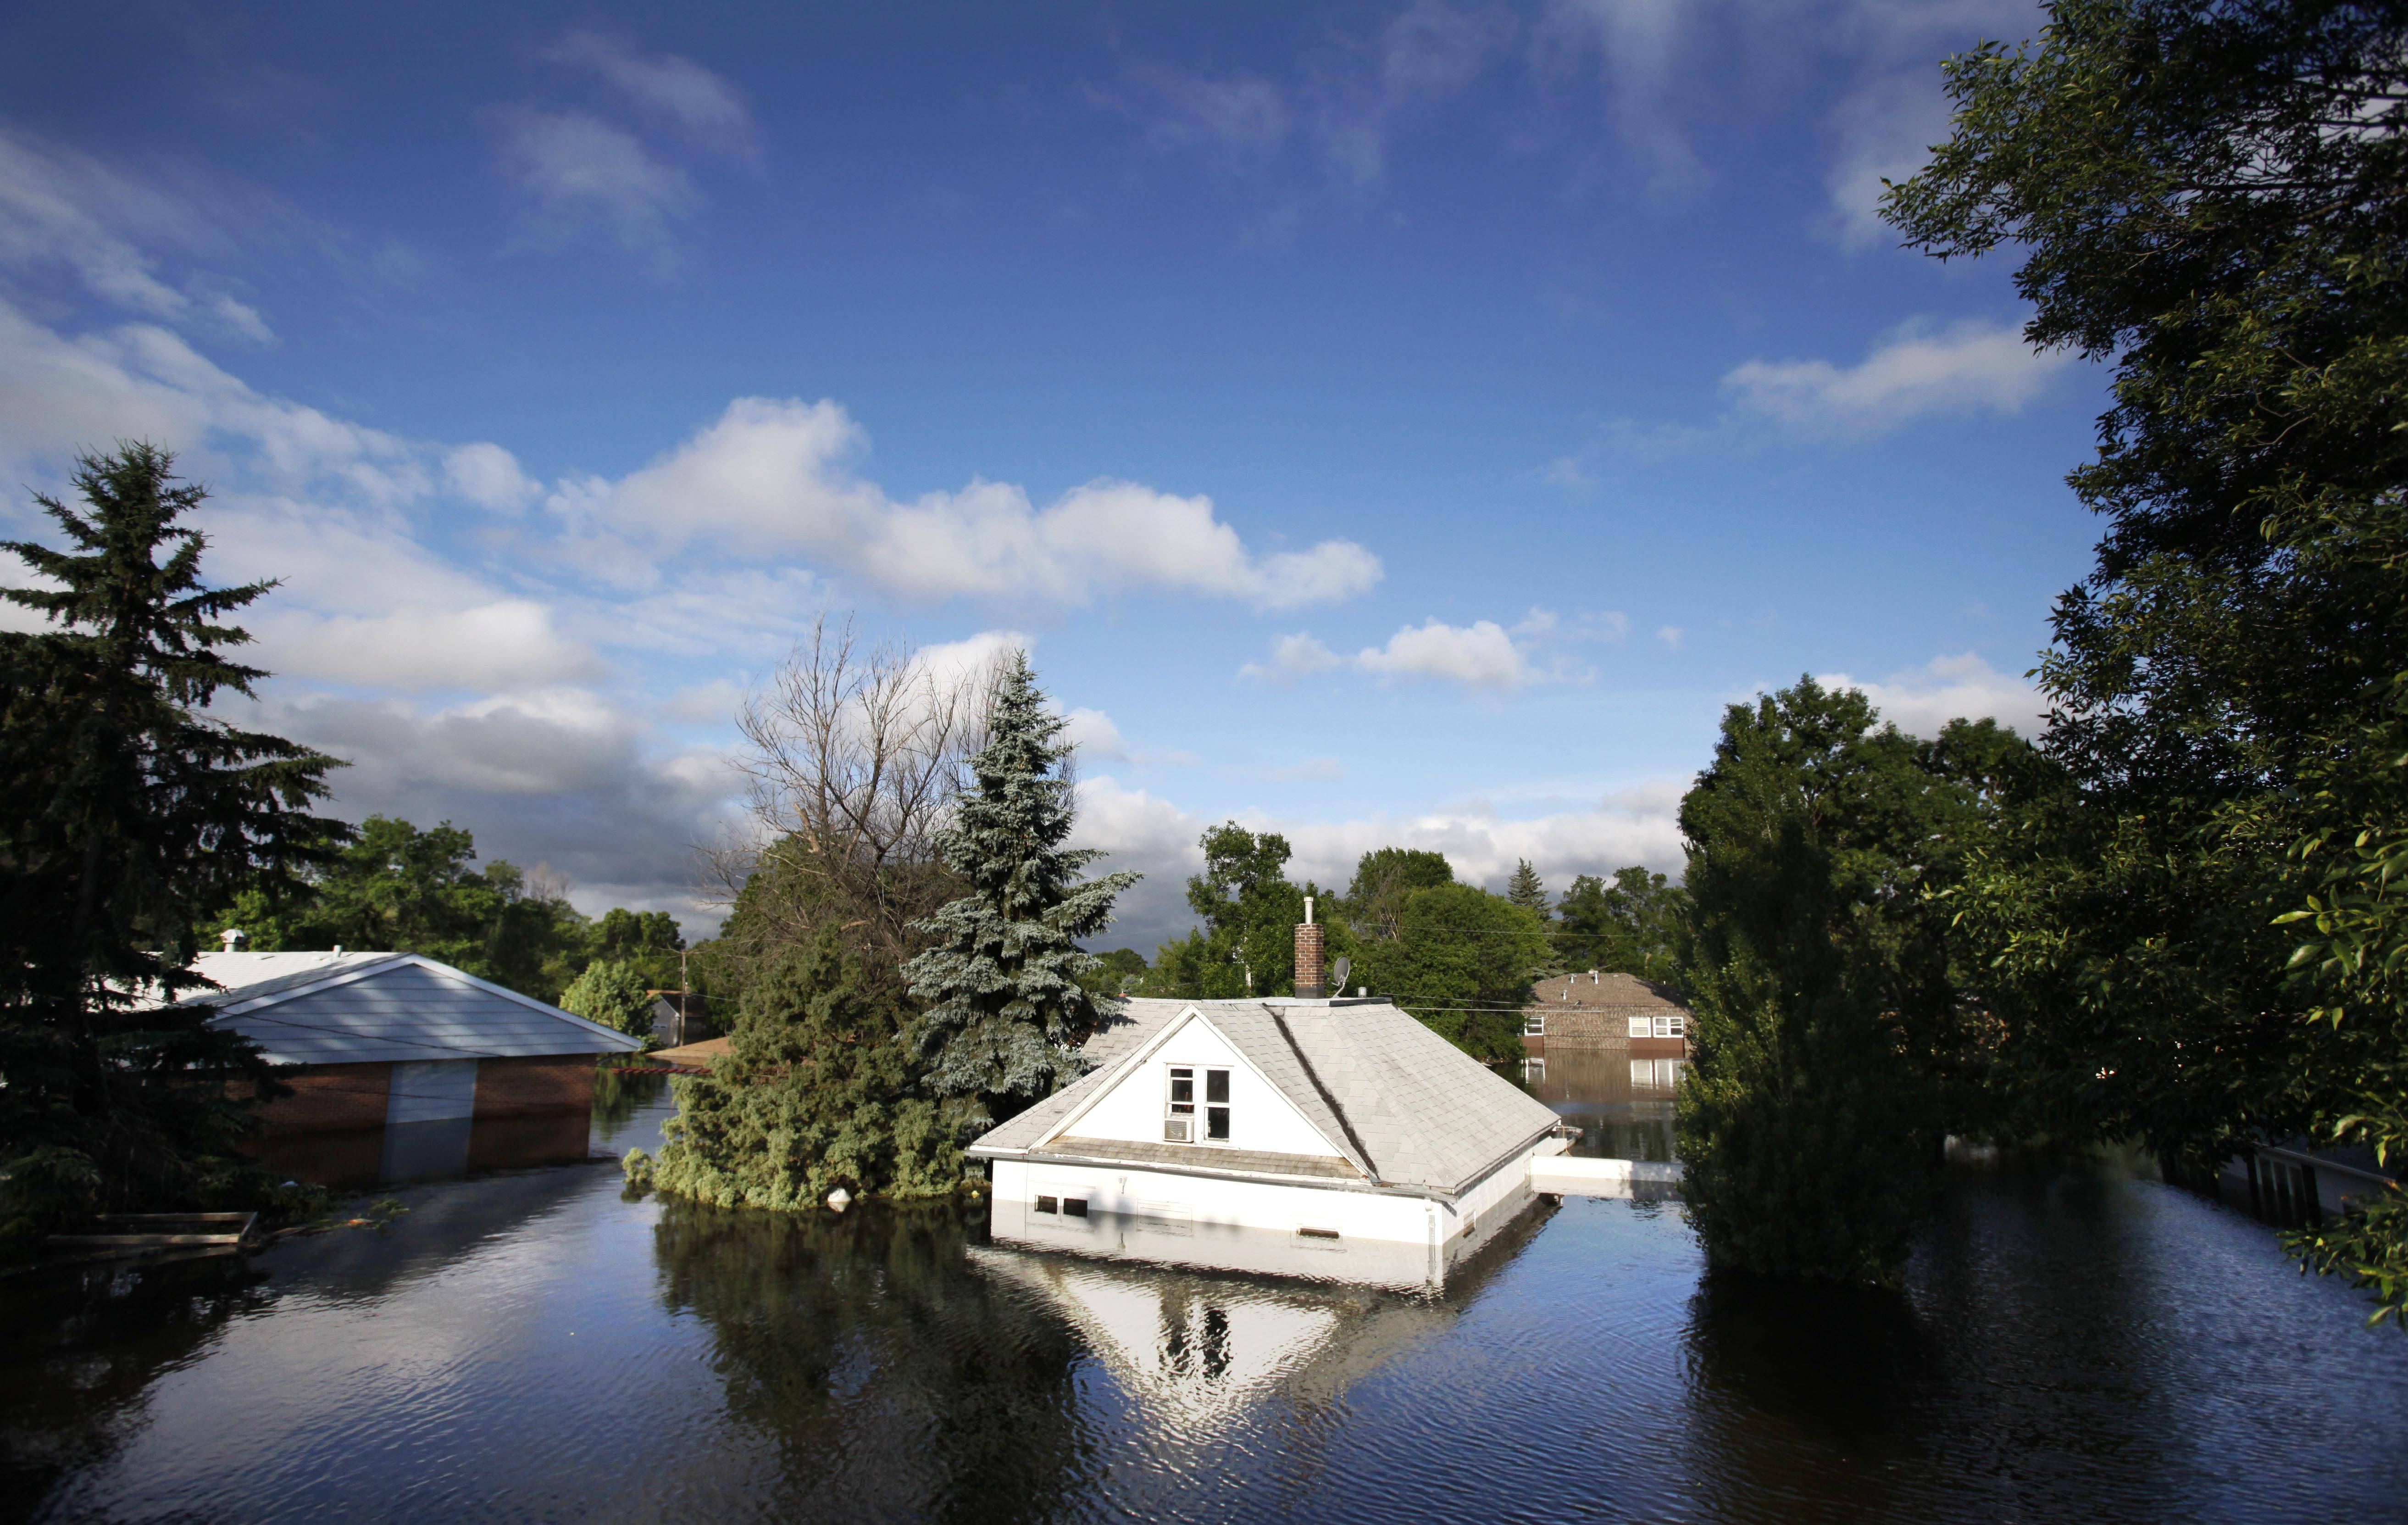 Floodwaters from the Souris River surround homes near Minot State University in Minot, N.D., June 27, 2011. Global warming is rapidly turning America the beautiful into America the stormy, sneezy and dangerous, according to the National Climate Assessment report released Tuesday.